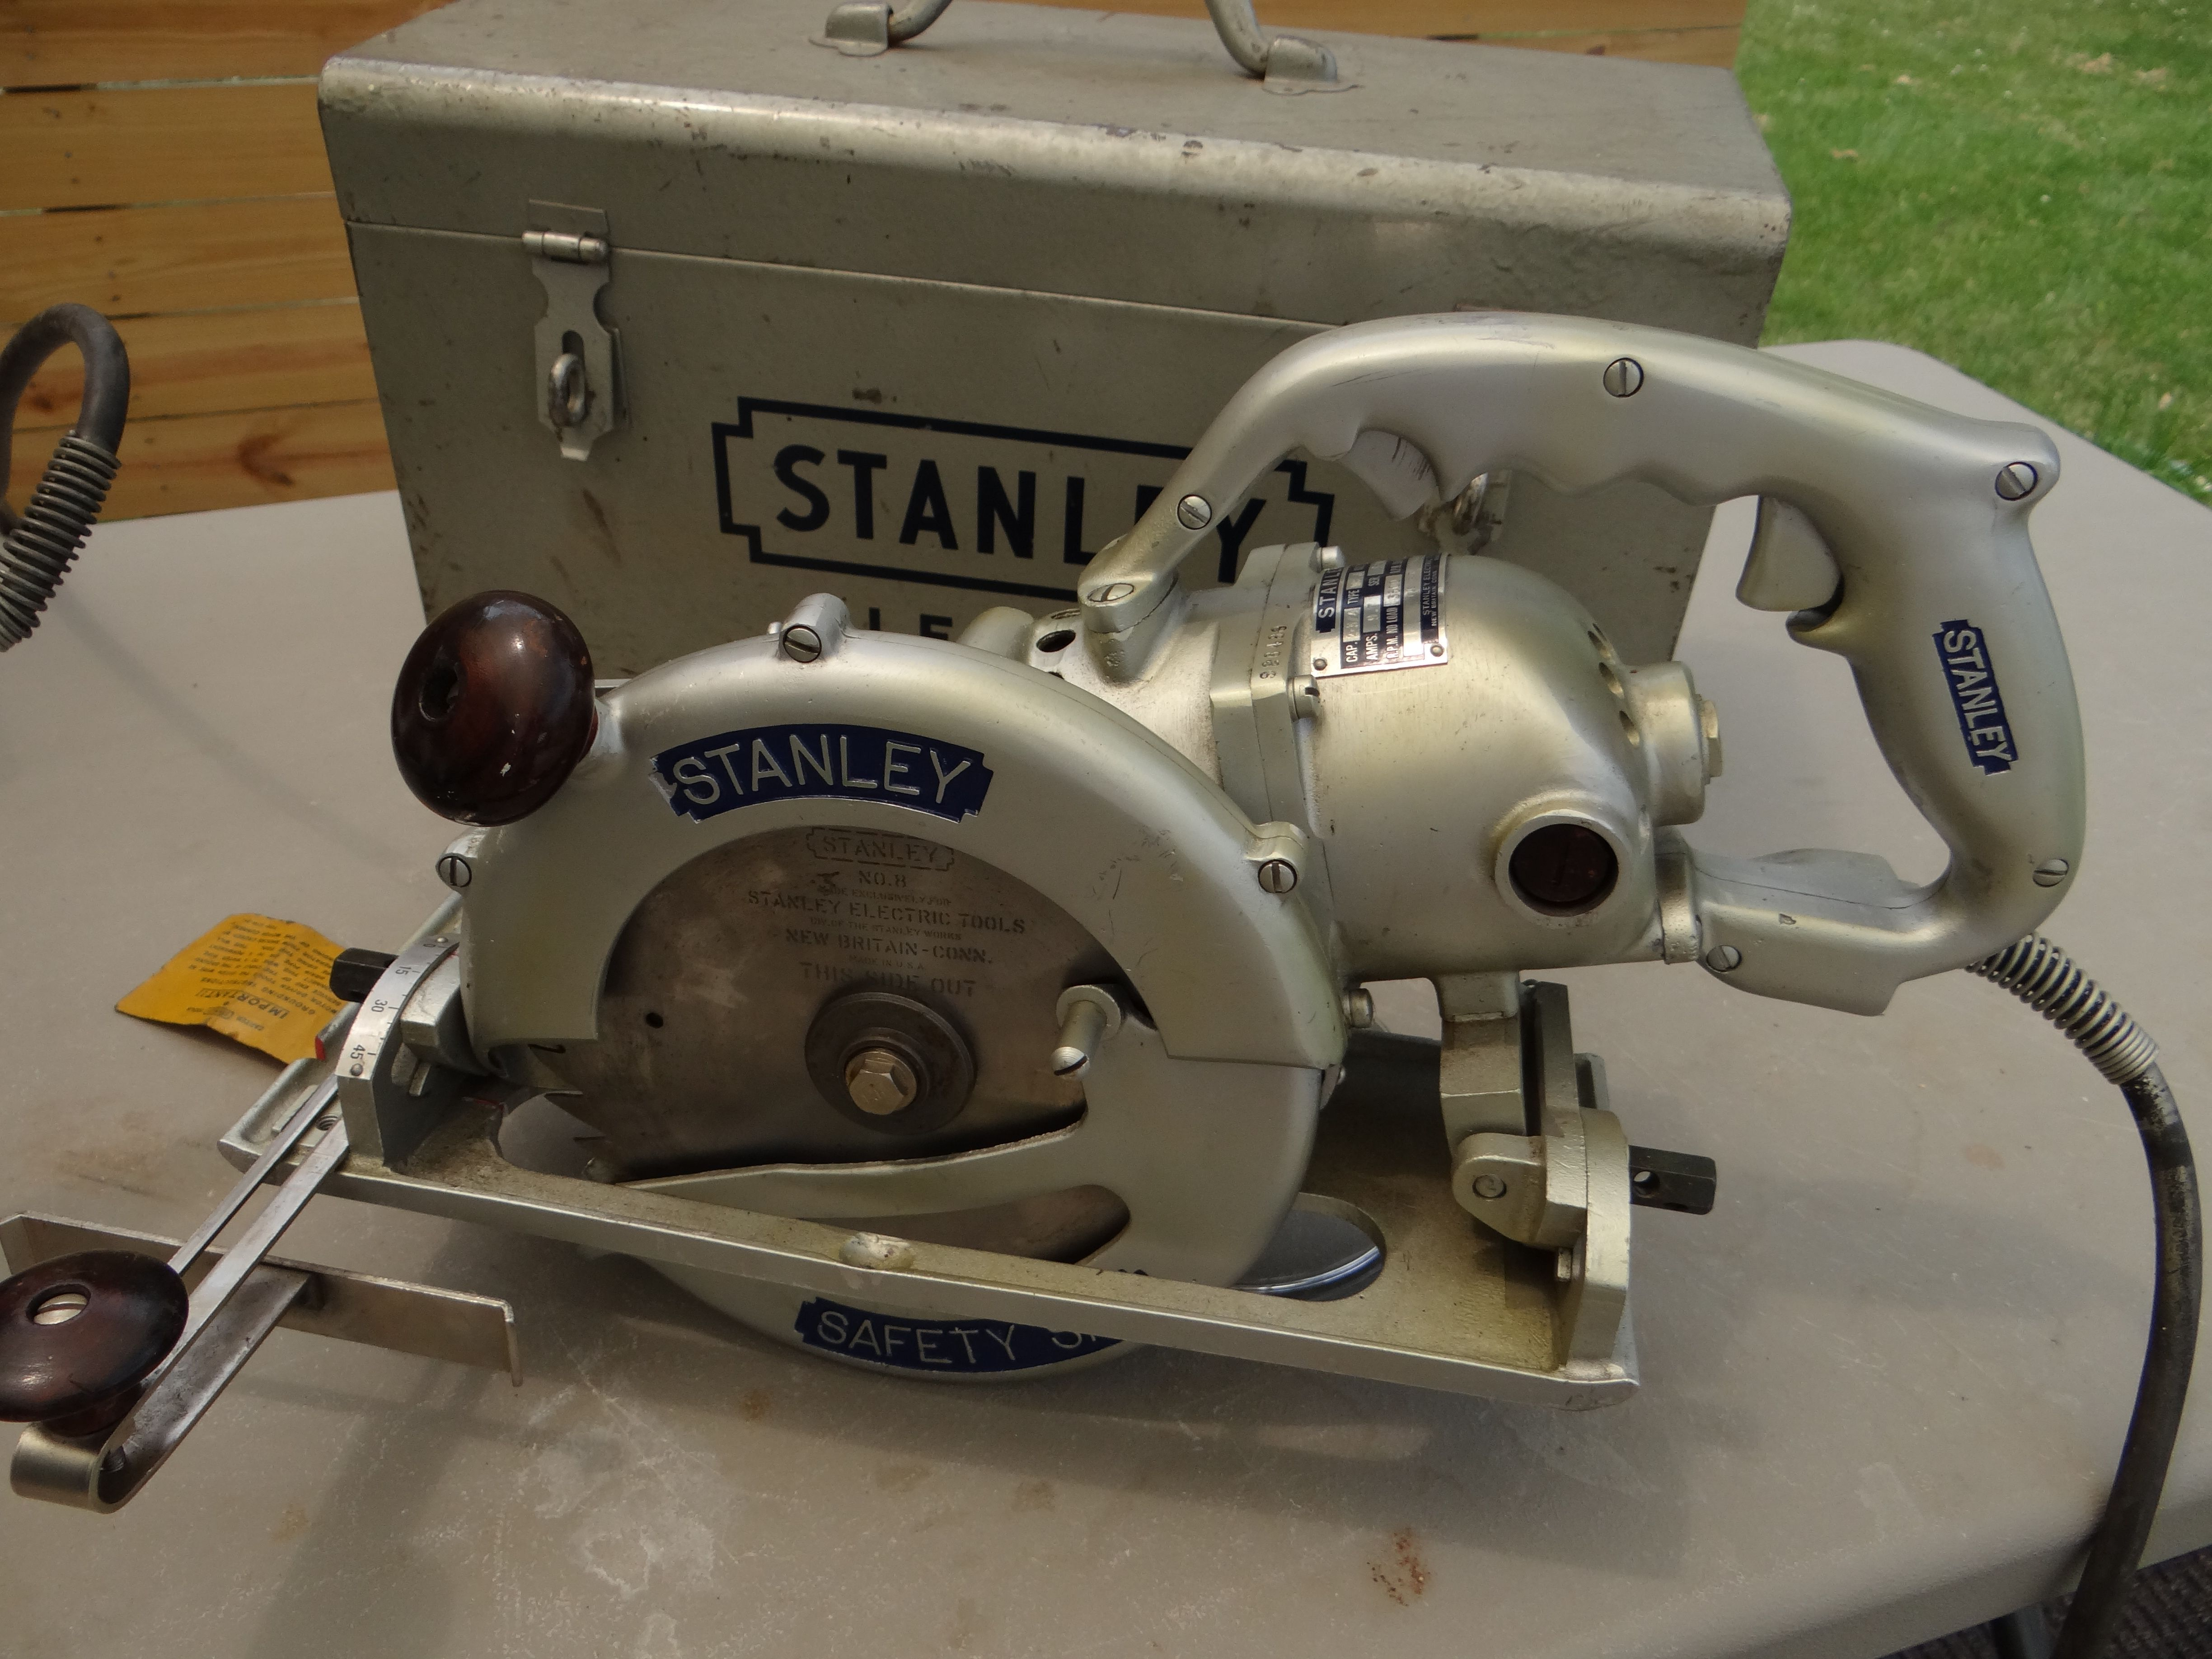 small resolution of 1950 stanley w8safety saw circular saw cool tools power saw vintage antiques